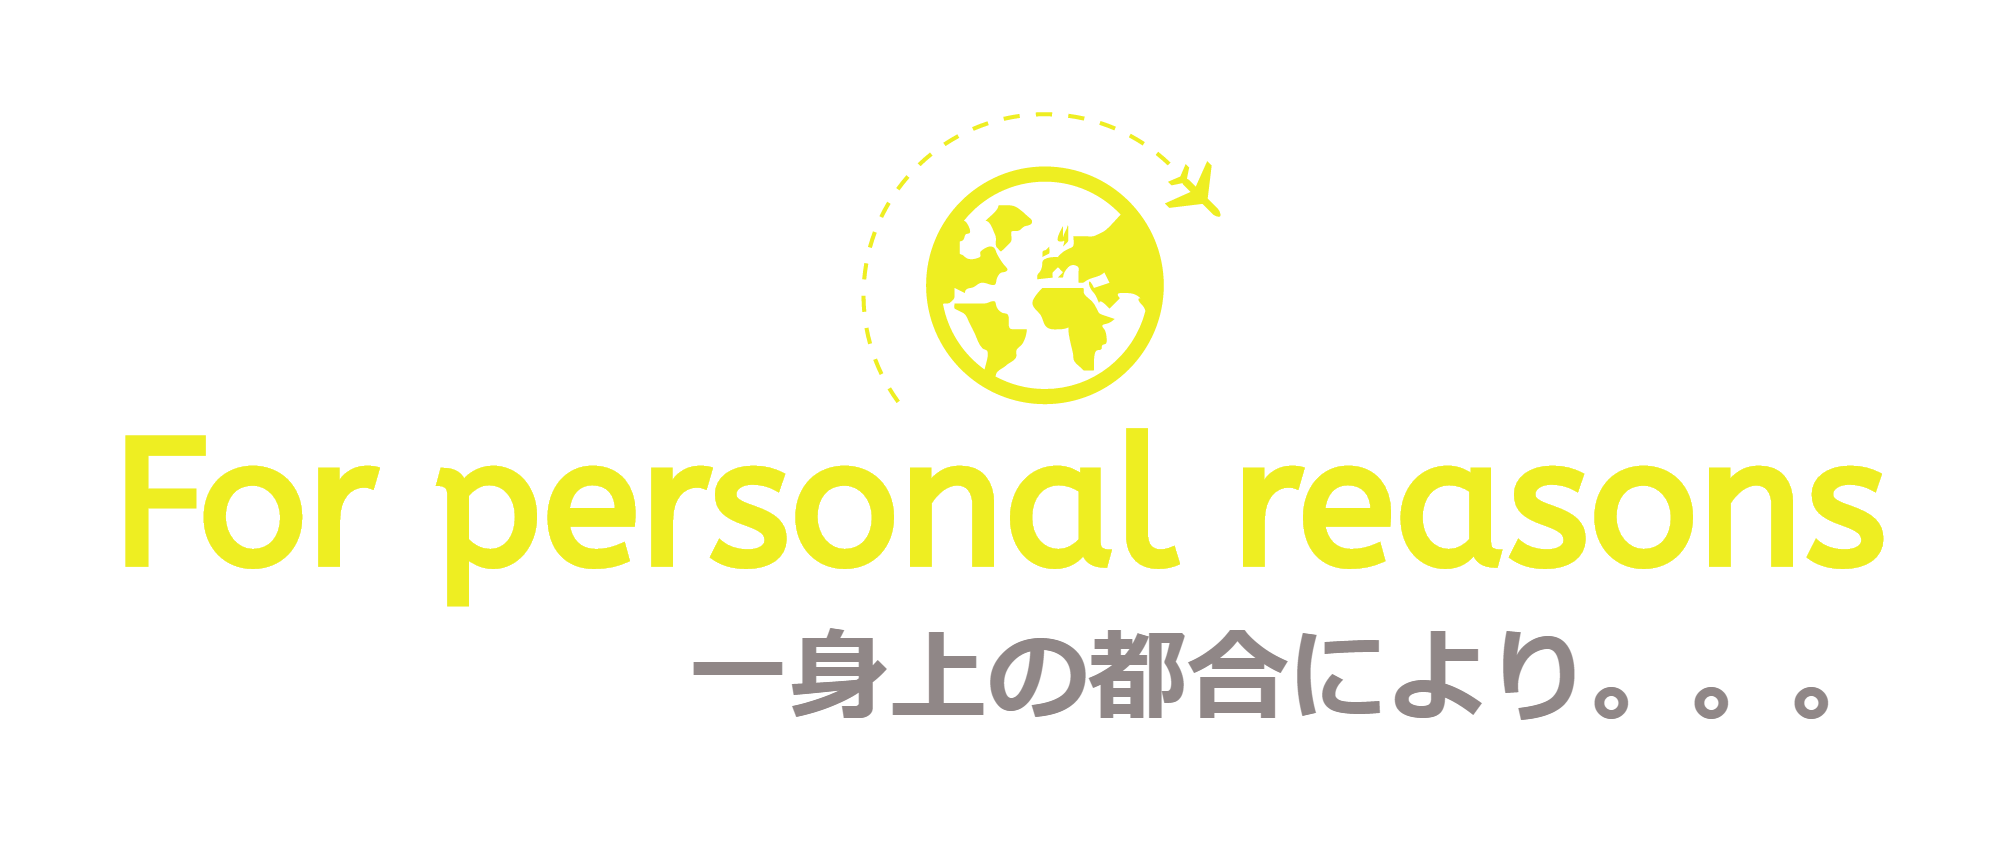 For personal reasons 一身上の都合により…